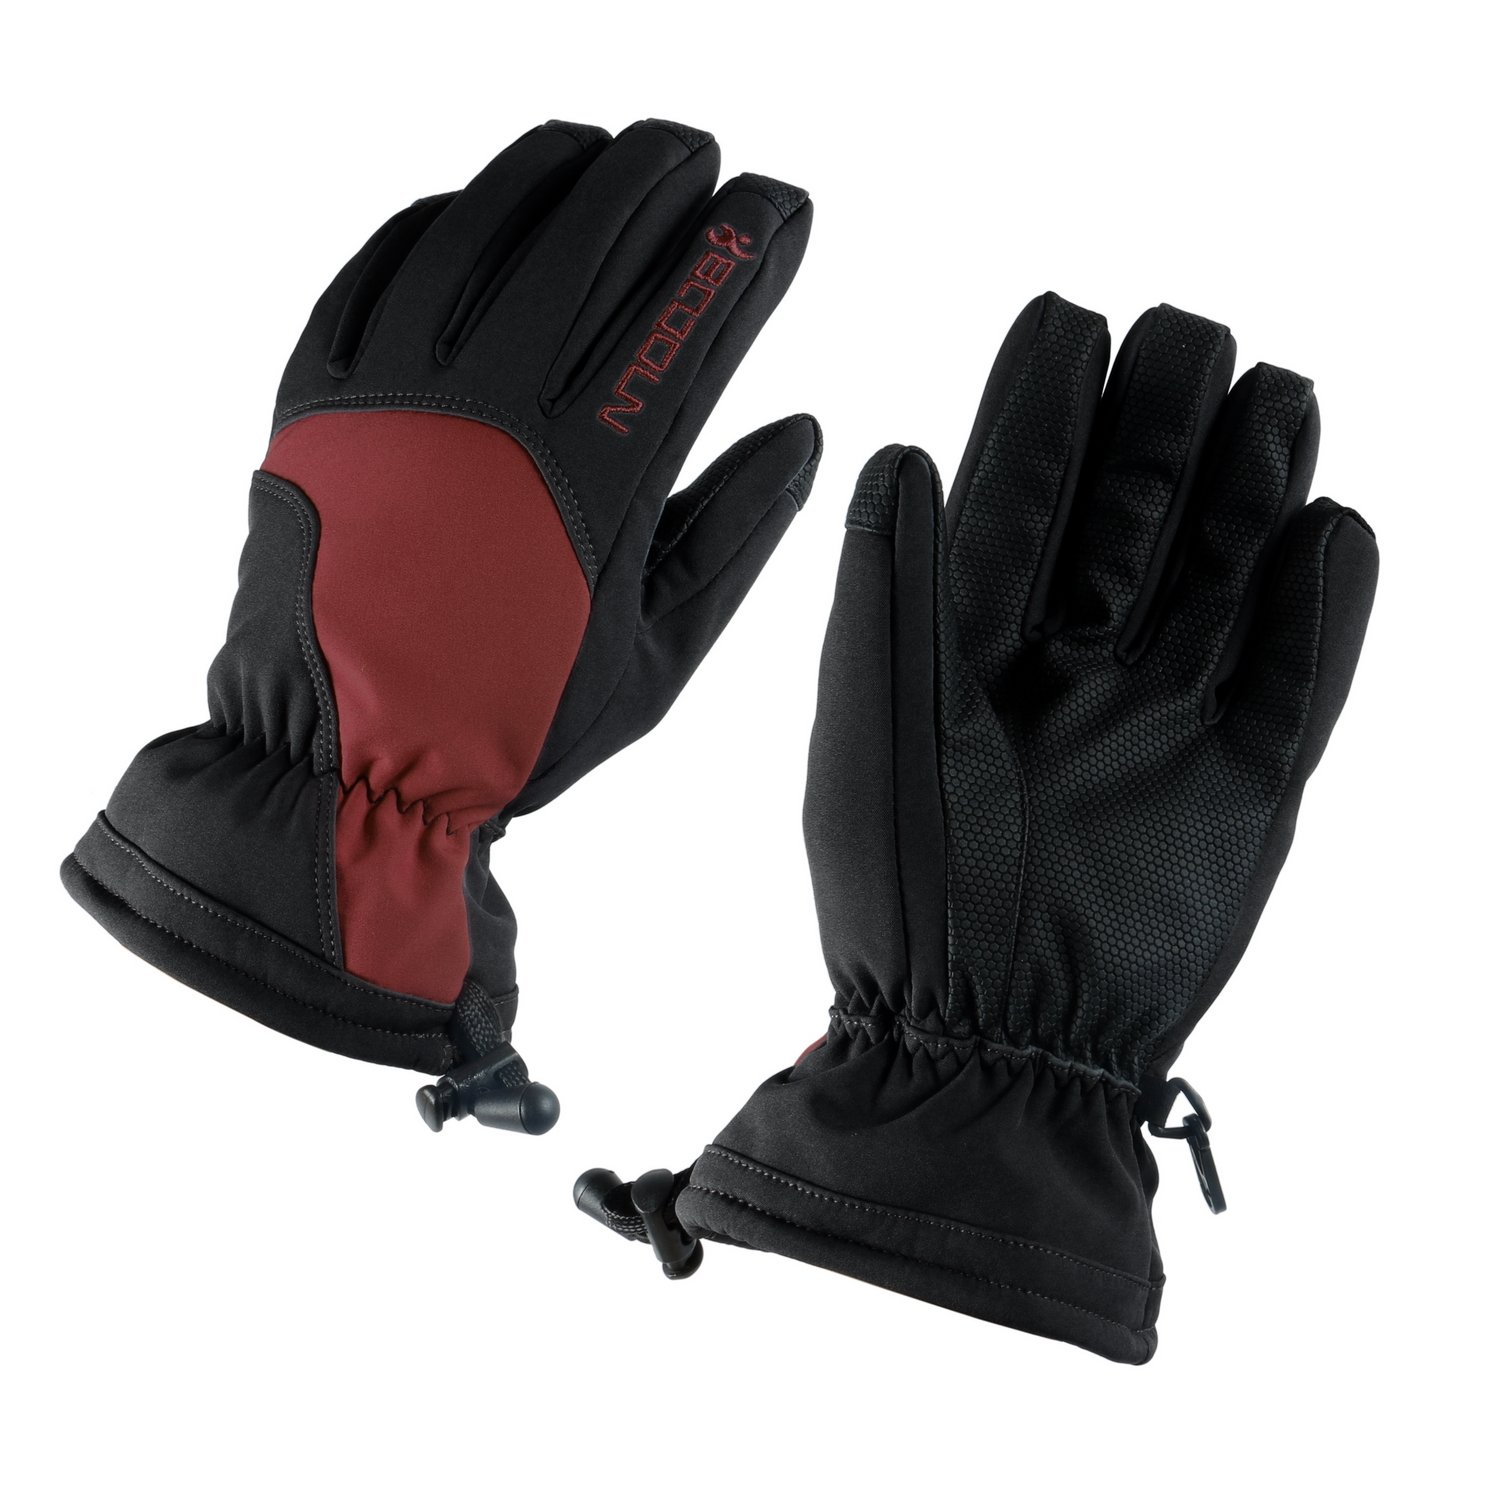 Winter Snow Ski Gloves Waterproof Thinsulate Warm Skiing Snowboard Gloves for Men Women HARAVAL